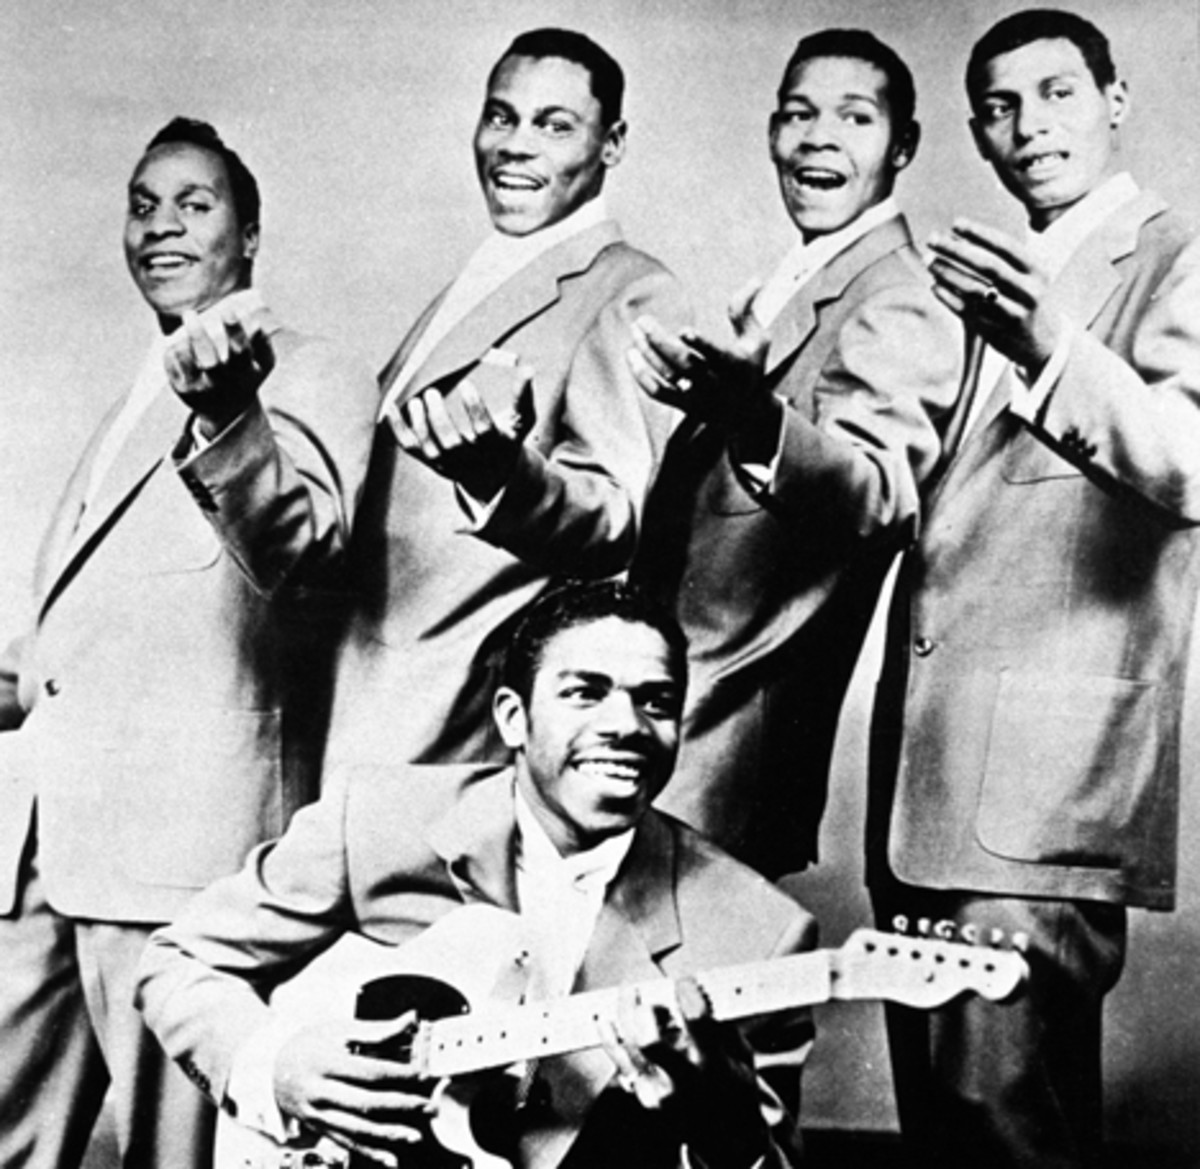 The Spaniels 1955